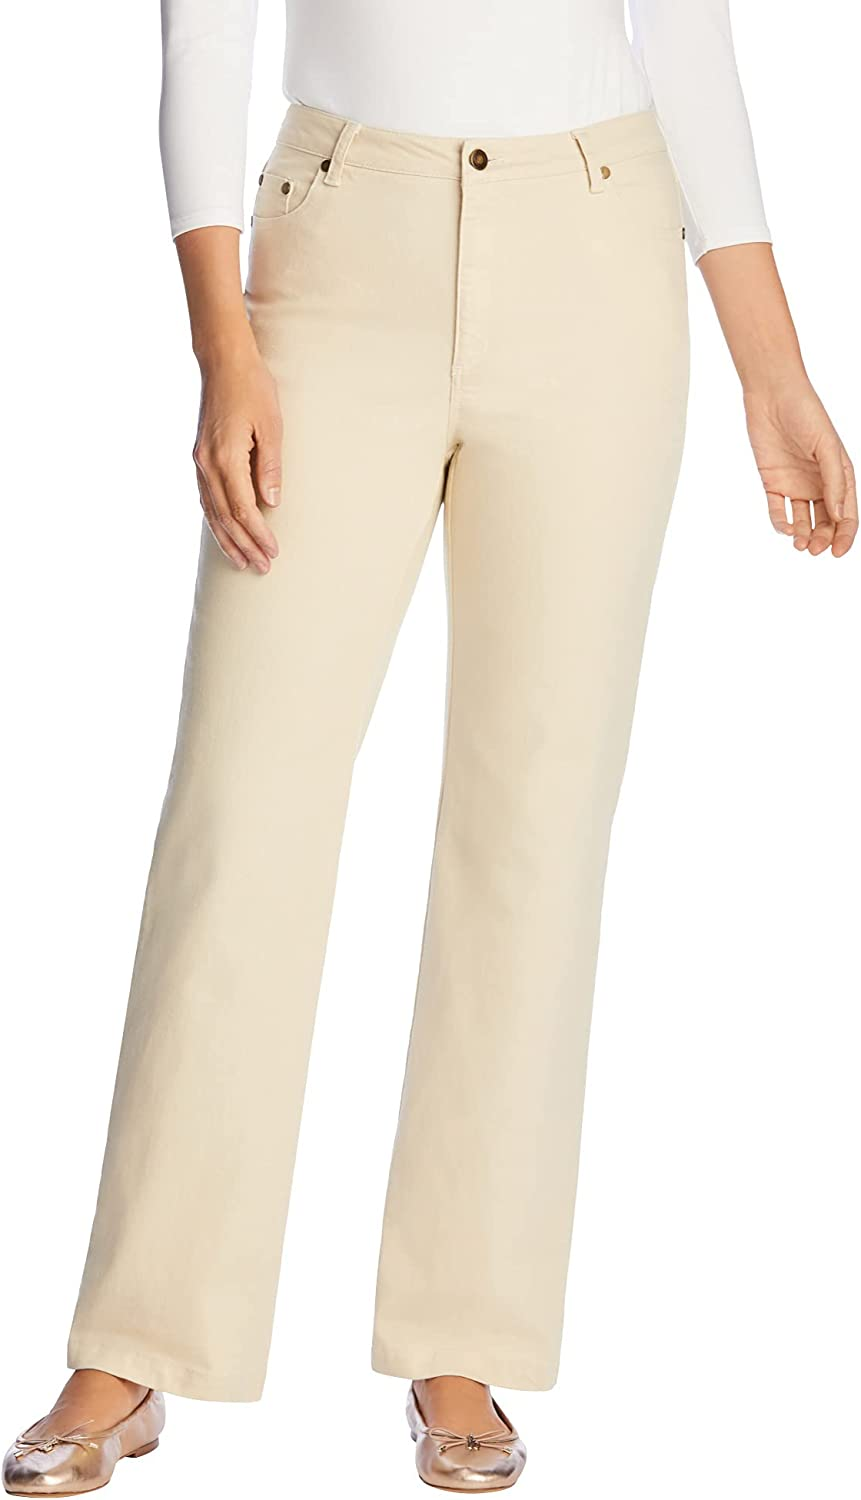 Woman Within Max 53% OFF 5 popular Women's Plus Size Jean Petite Leg Wide Stretch